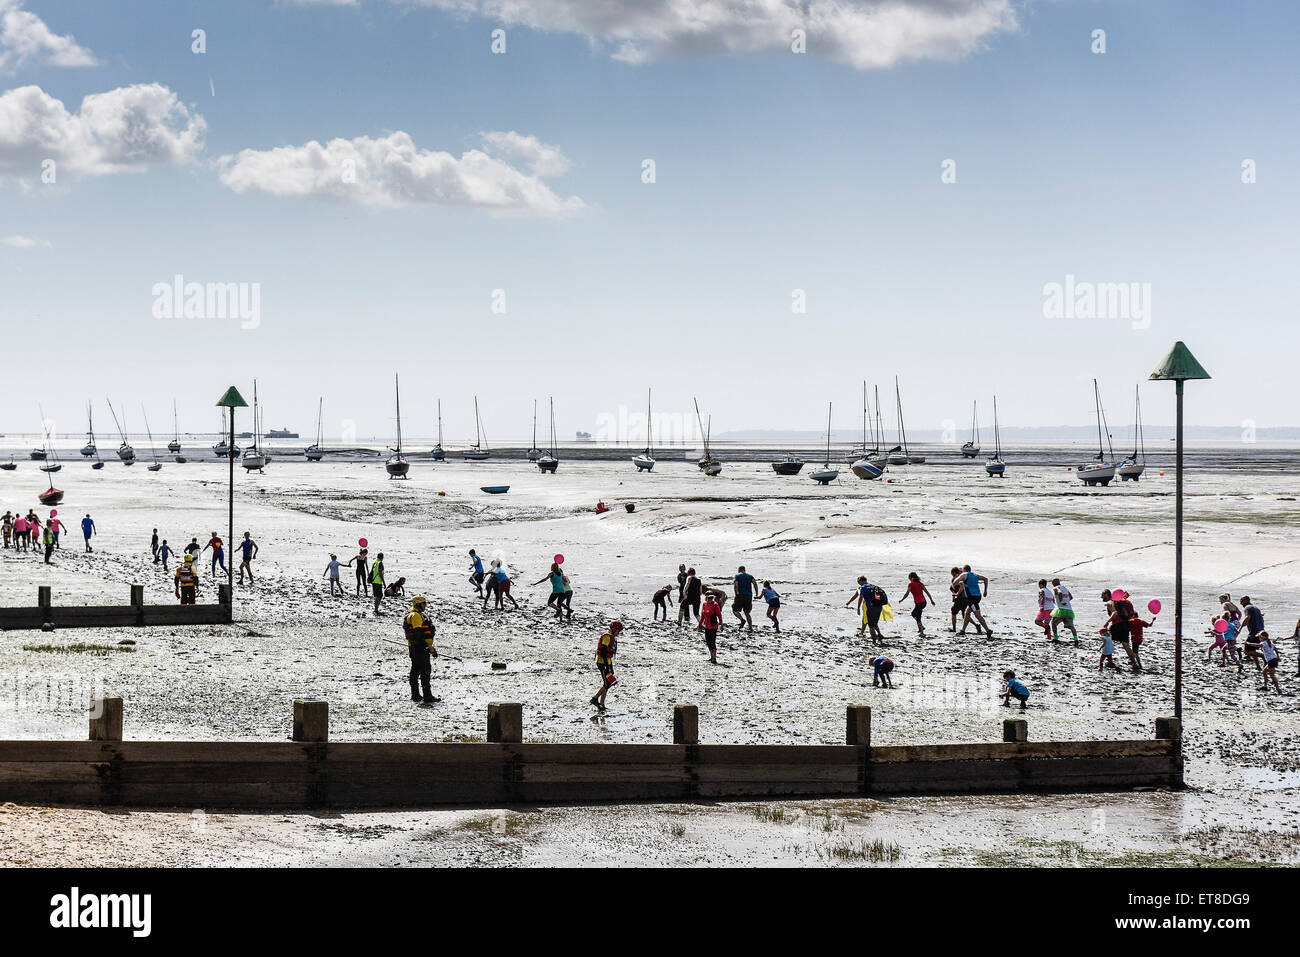 The annual charity fun run across the muddy Thames Estuary foreshore at Leigh on Sea, Essex. - Stock Image